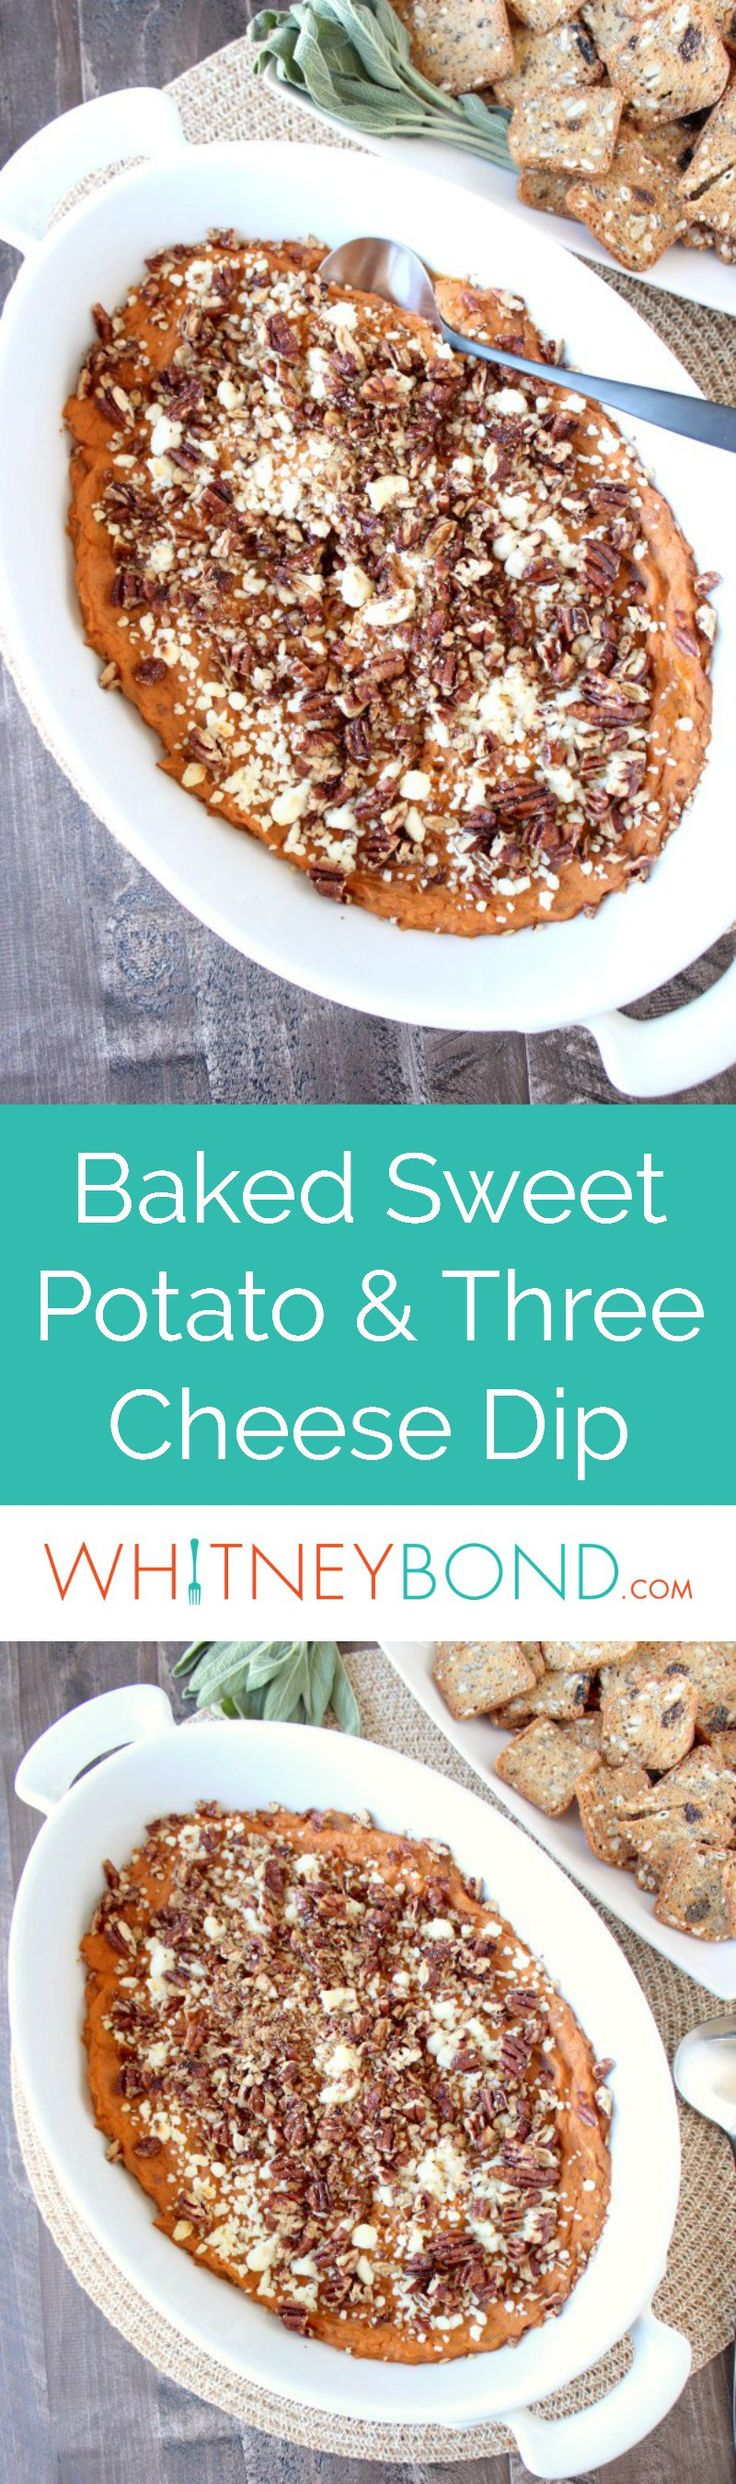 Creamy sweet potatoes are combined with three cheeses & spices in this scrumptious new cheese dip recipe that's both vegetarian & gluten free!